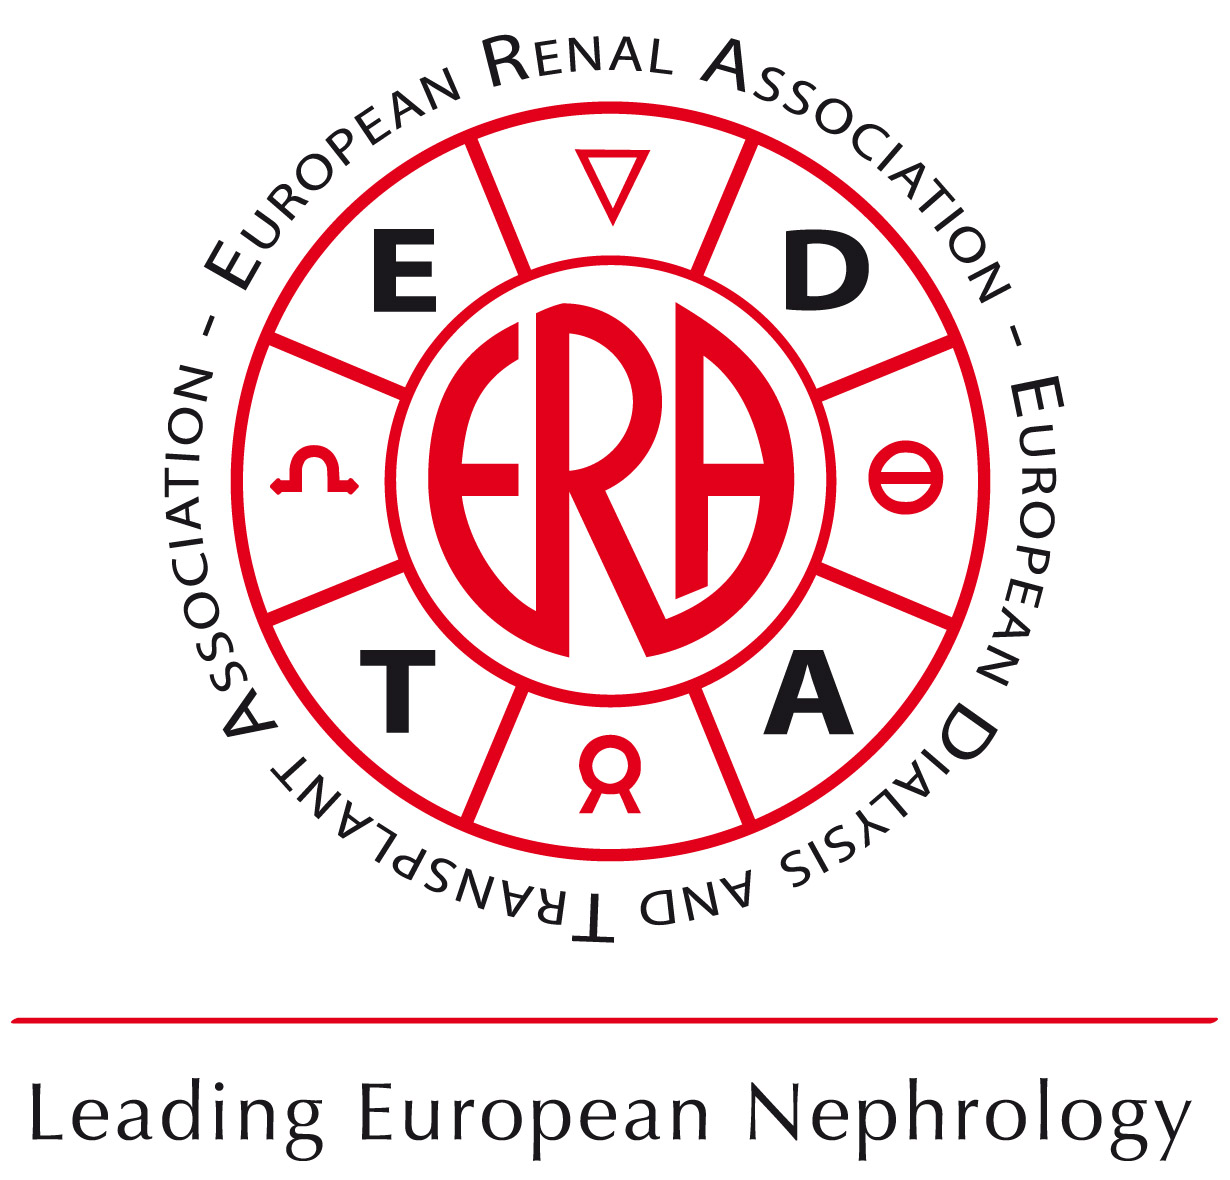 ERA-EDTA logo new 1014_2.jpg